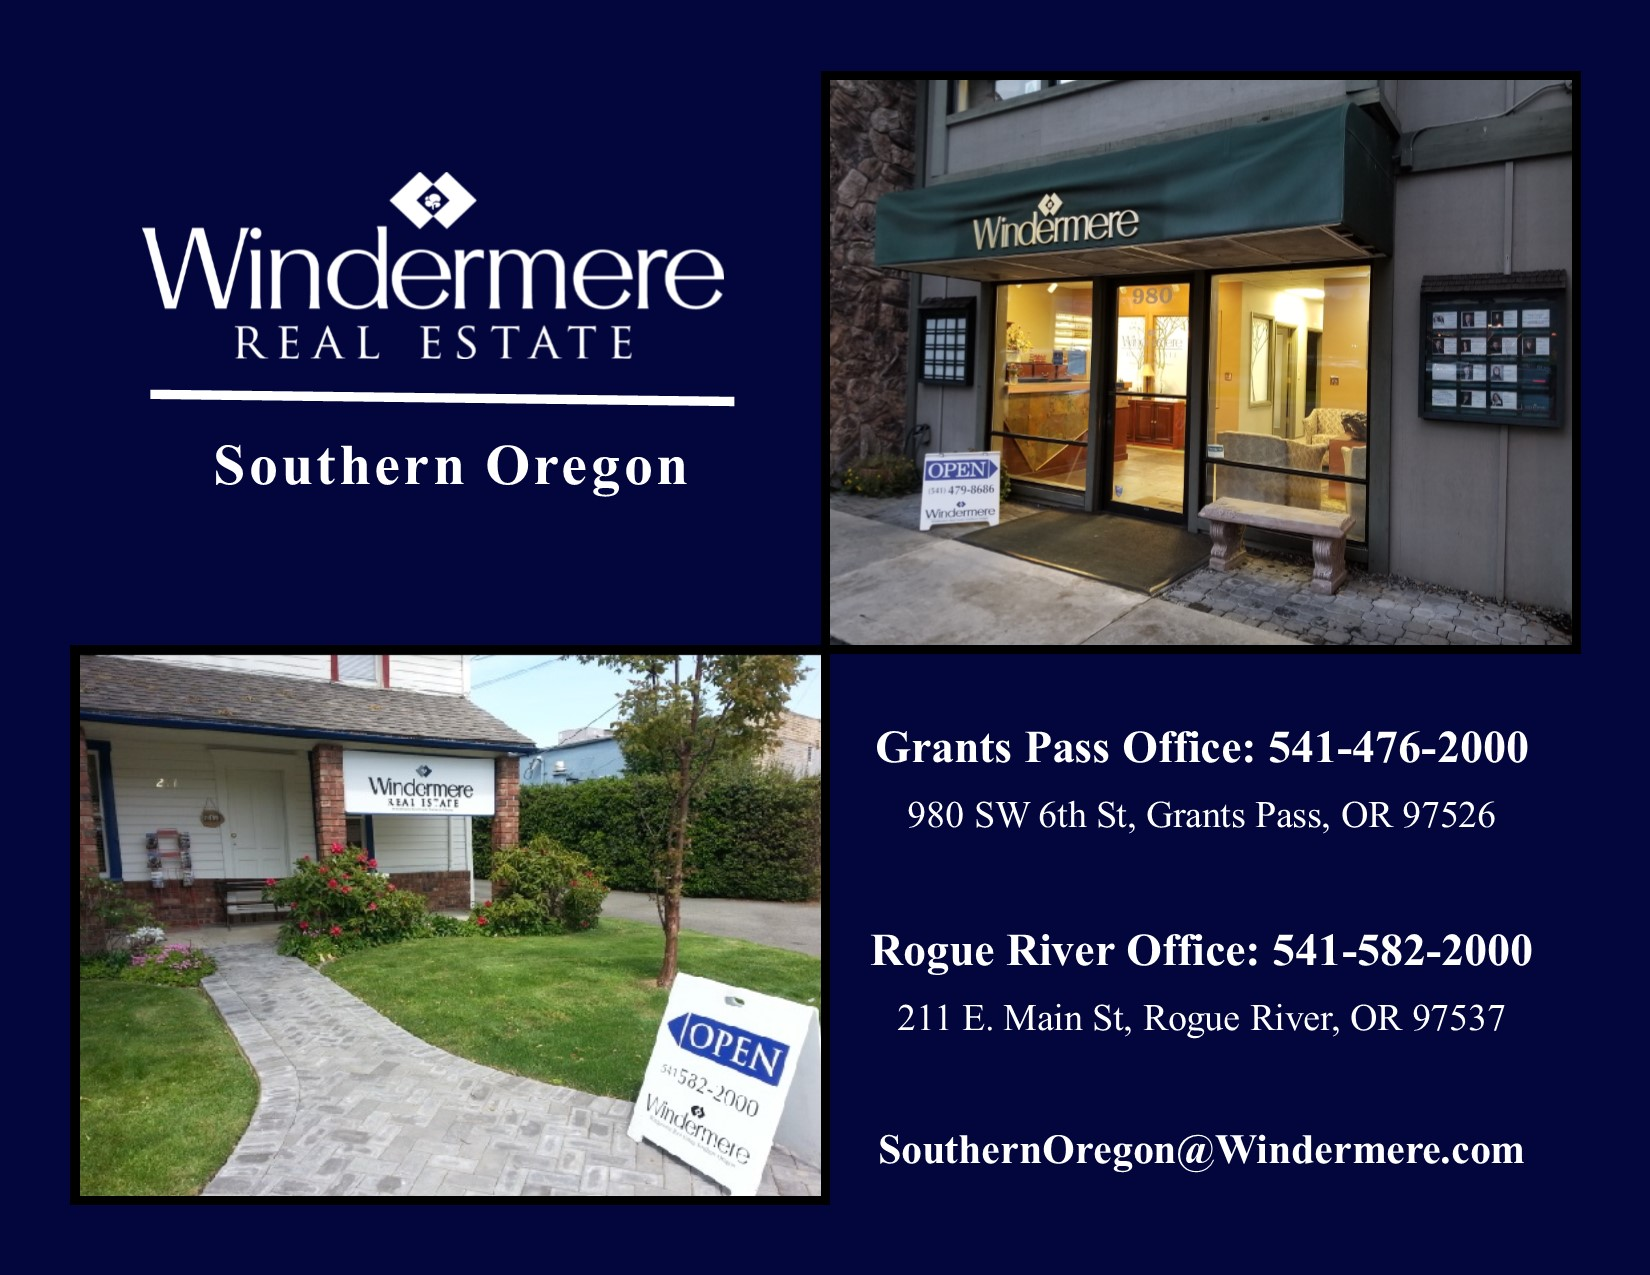 Marian_Susan_Southern_Oregon_Real_Estate_Windermere Grants Pass Office Pic